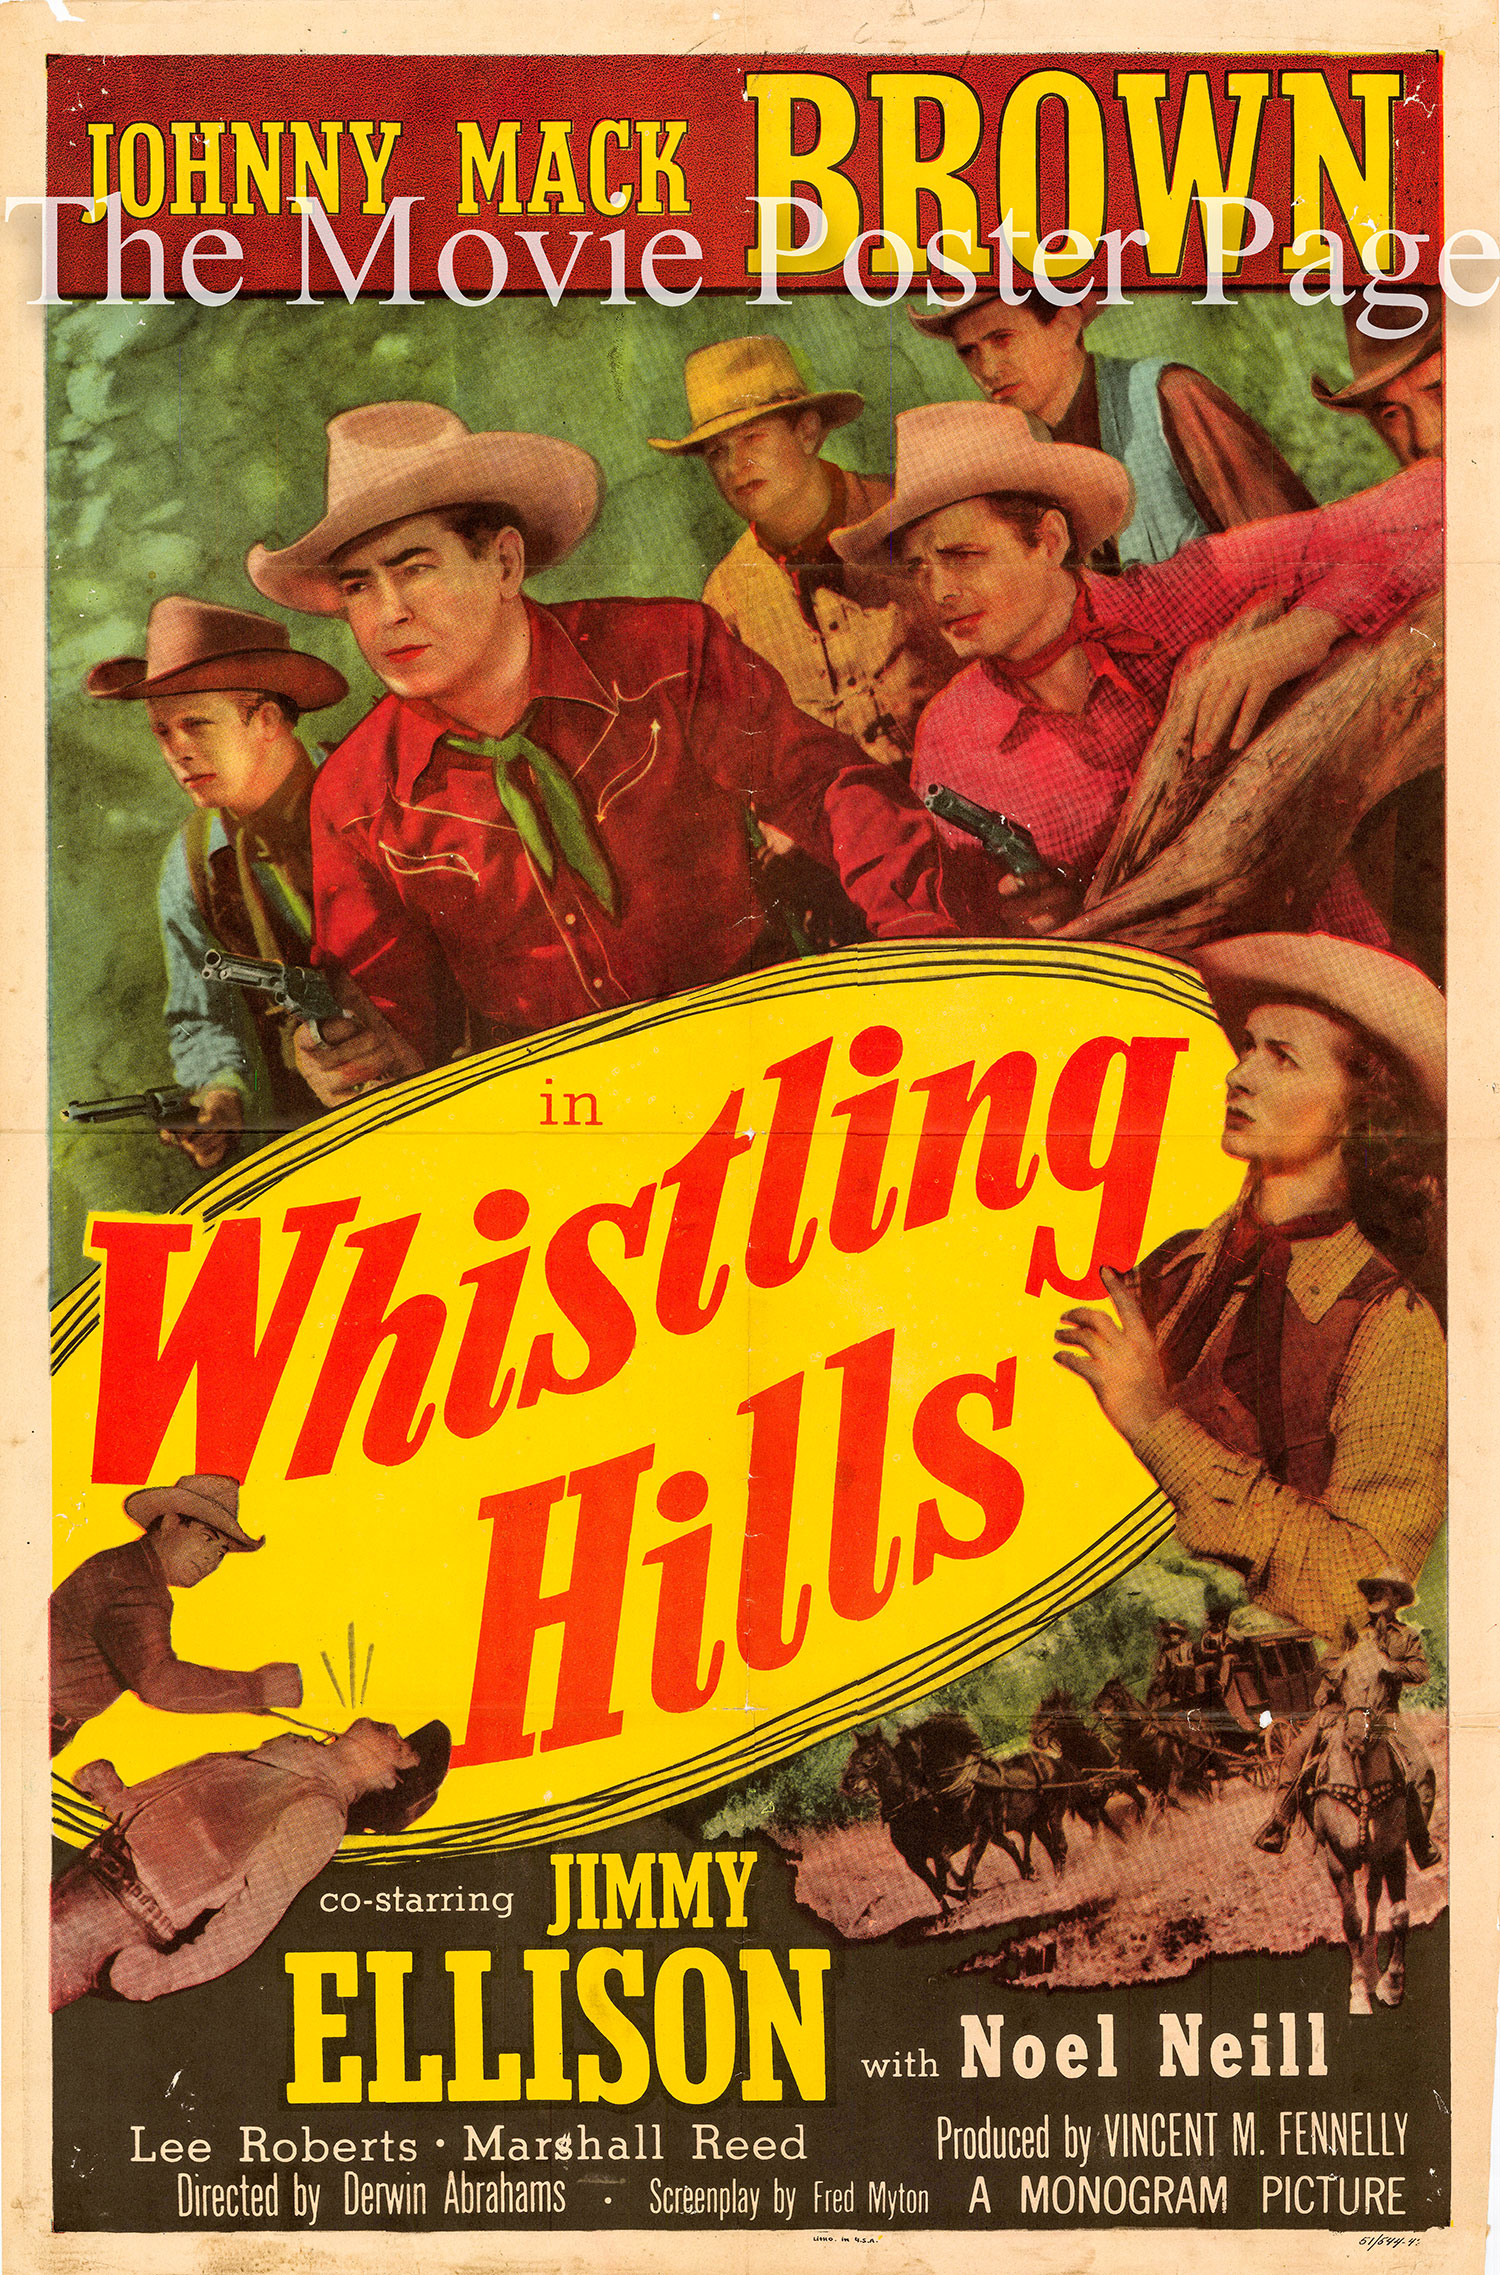 Pictured is a US one-sheet promotional poster for the 1951 Derwin Abrahams film Whistling Hills starring Johnny Mack Brown.